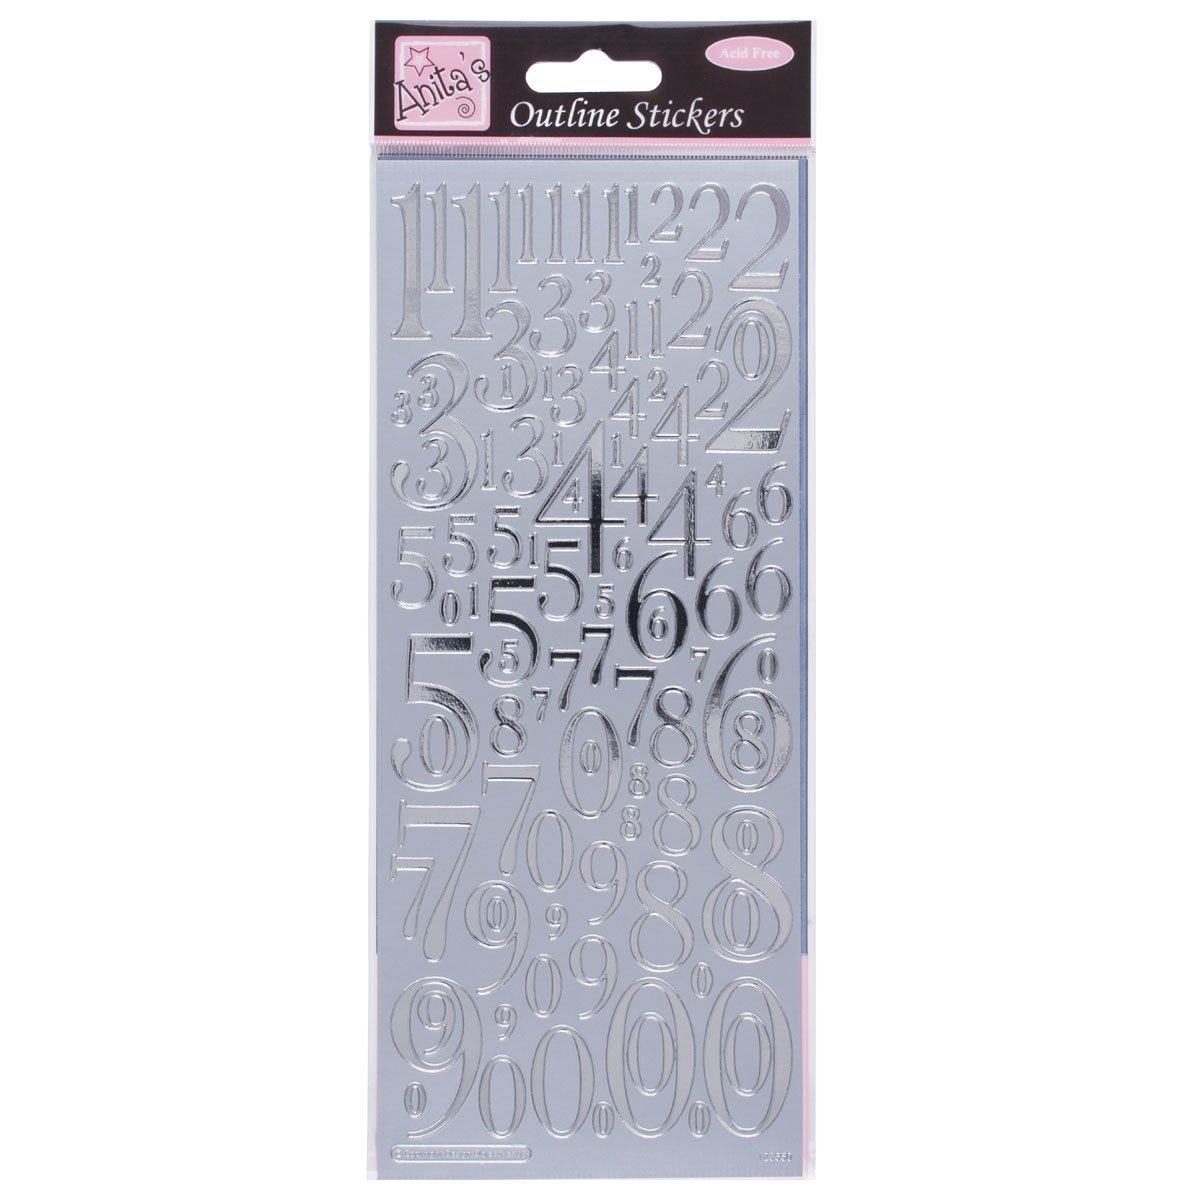 Anita's Mixed Numbers Outline Stickers - Silver docrafts 8101013